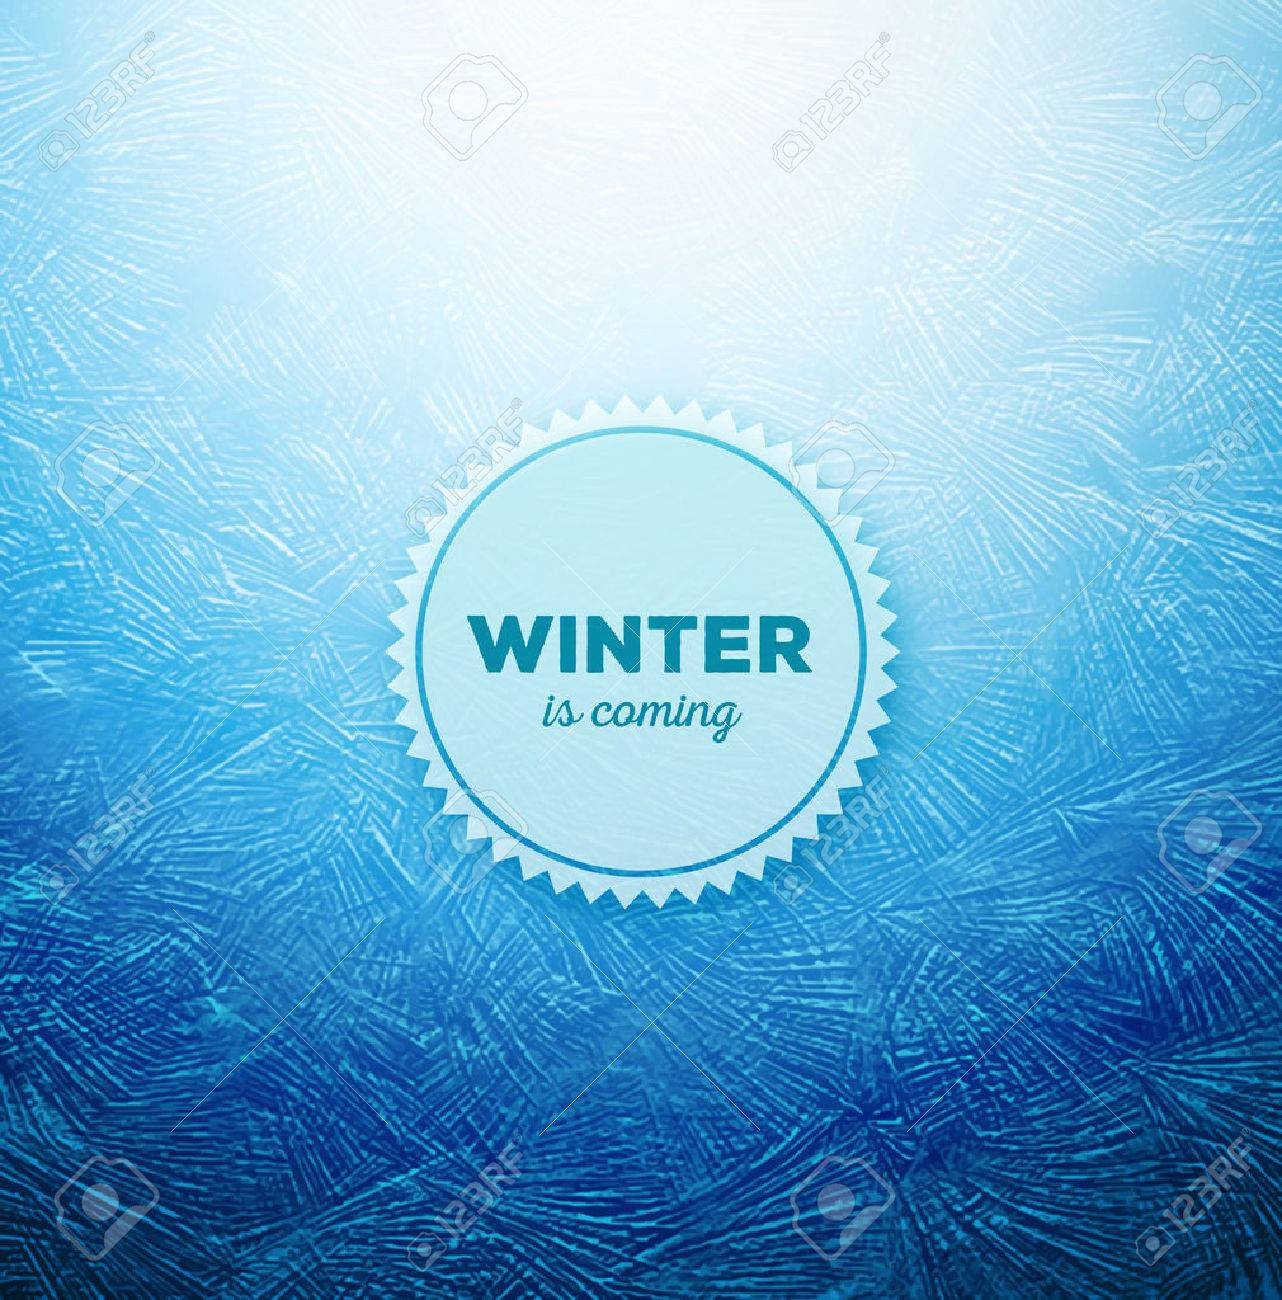 Ice background, winter is coming, eps 10 Stock Vector - 33033694